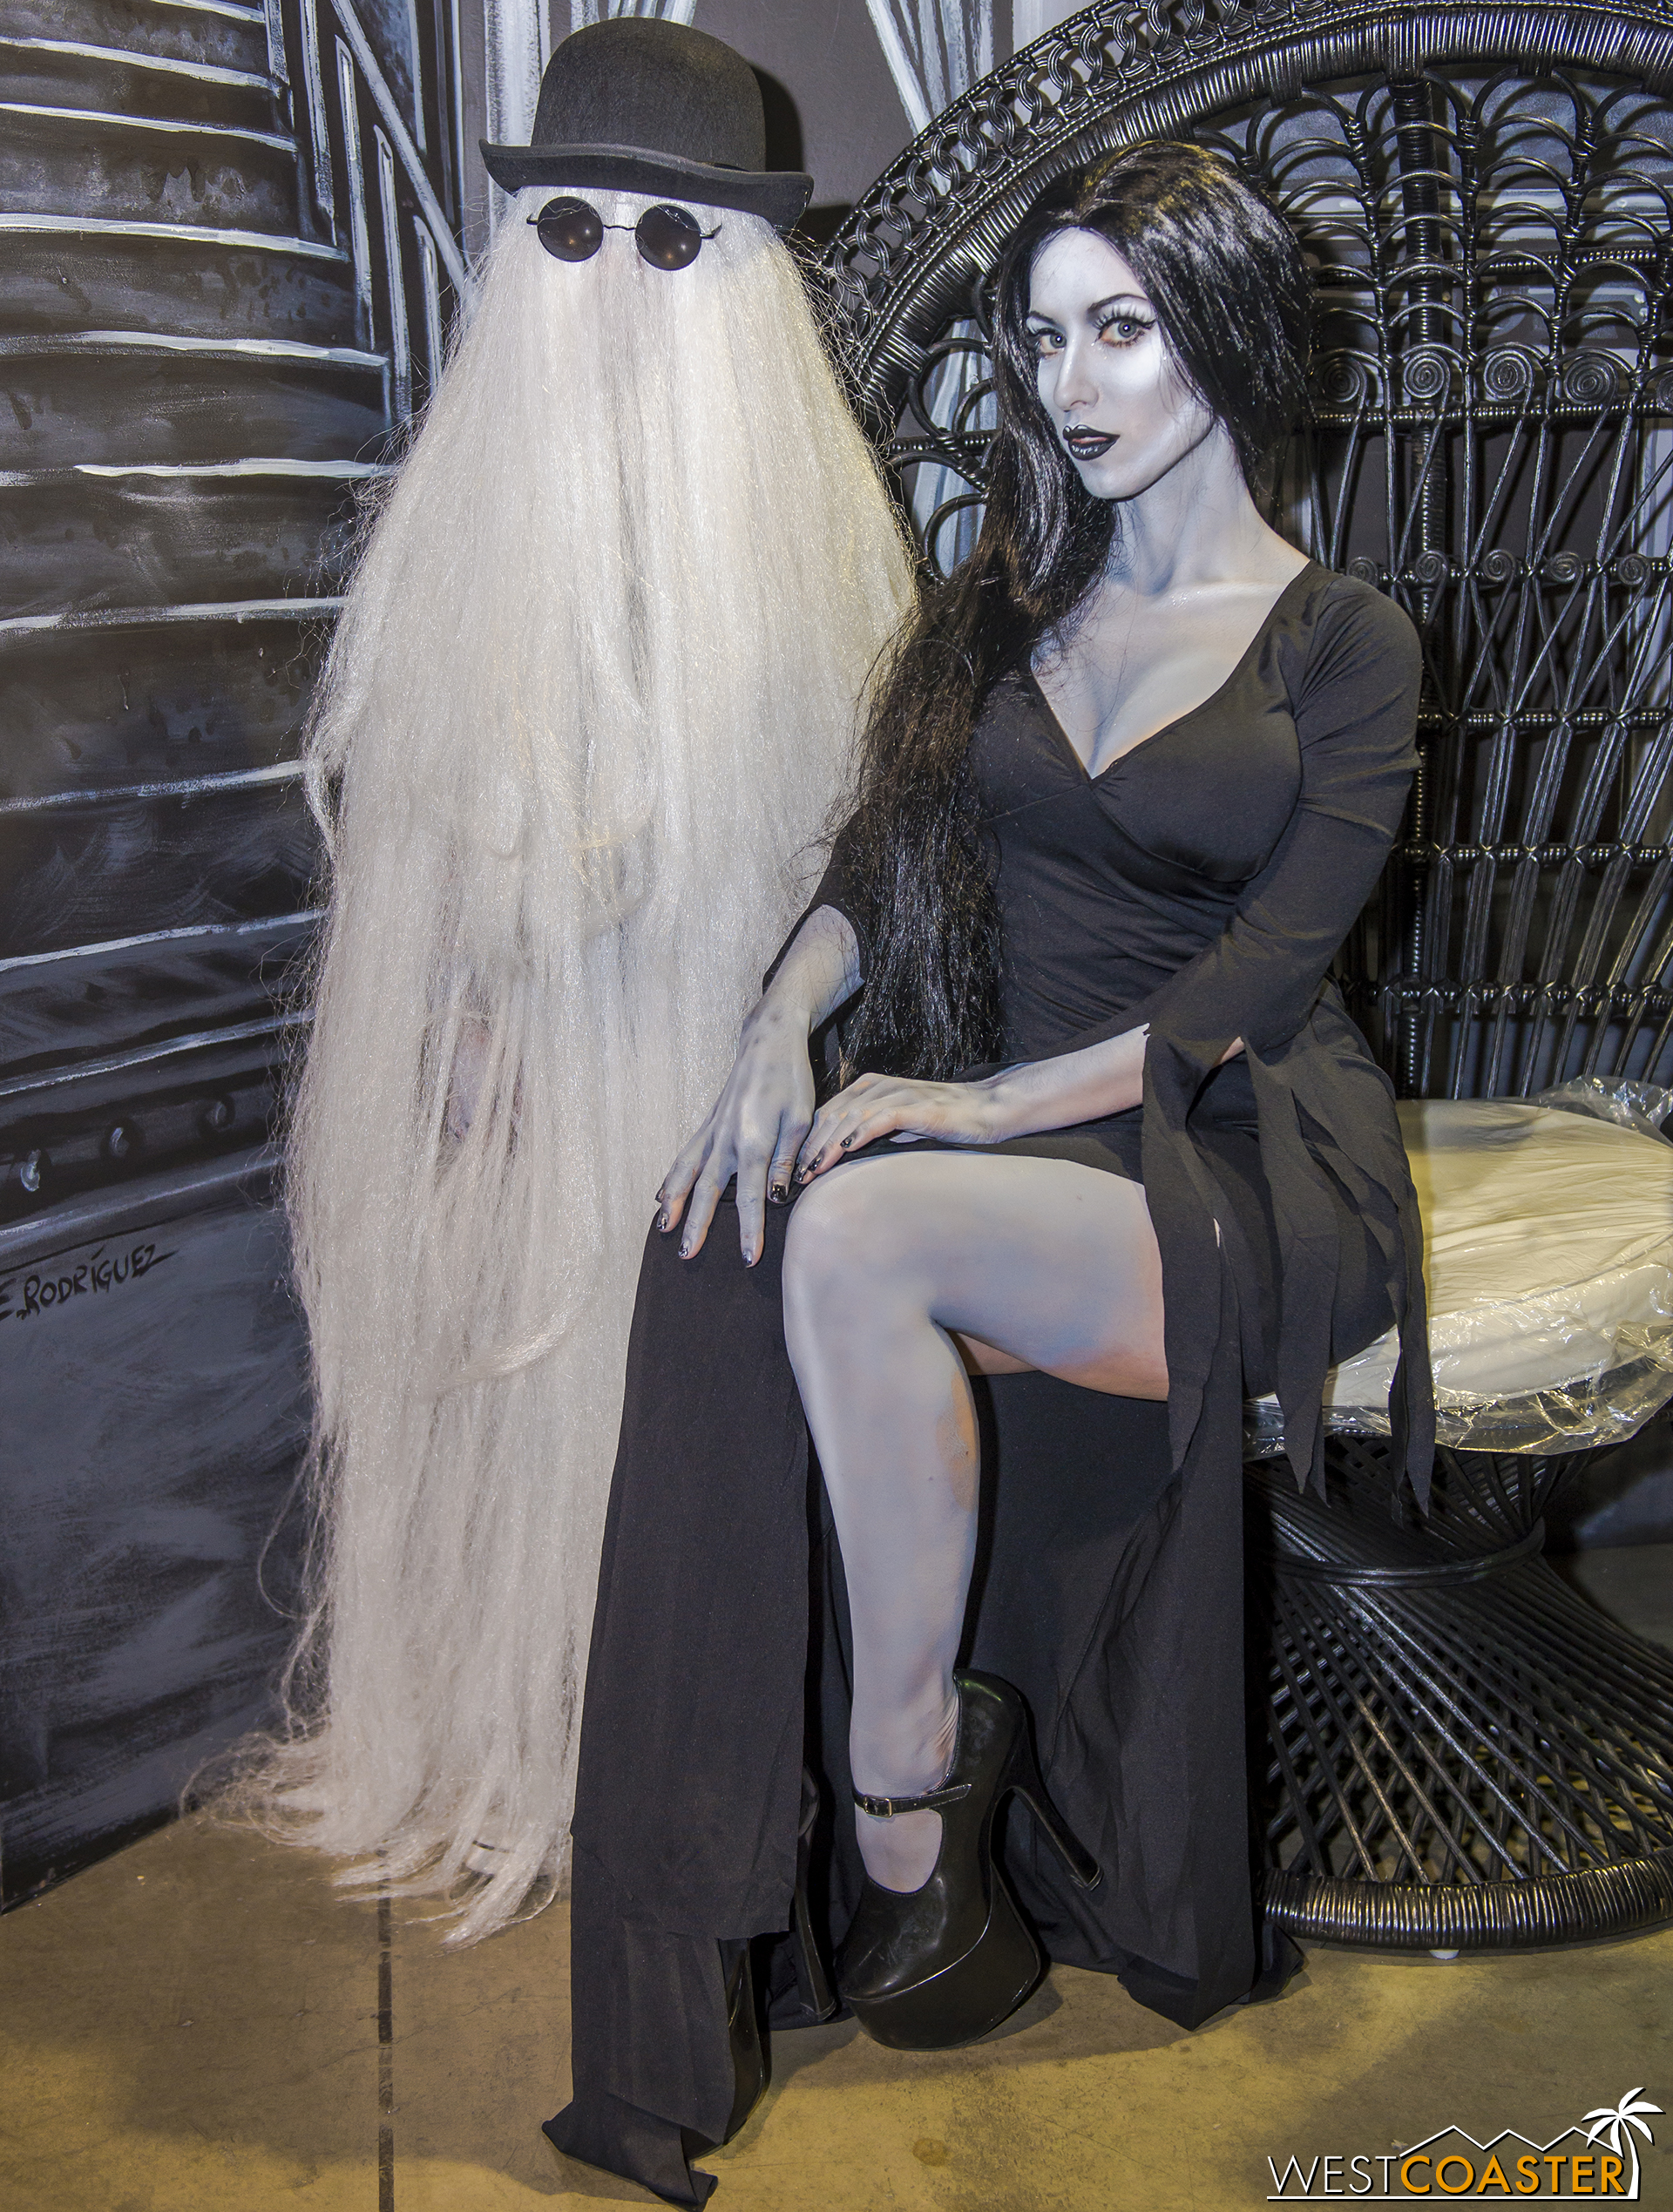 All these years later, the Addams Family remains quite popular.